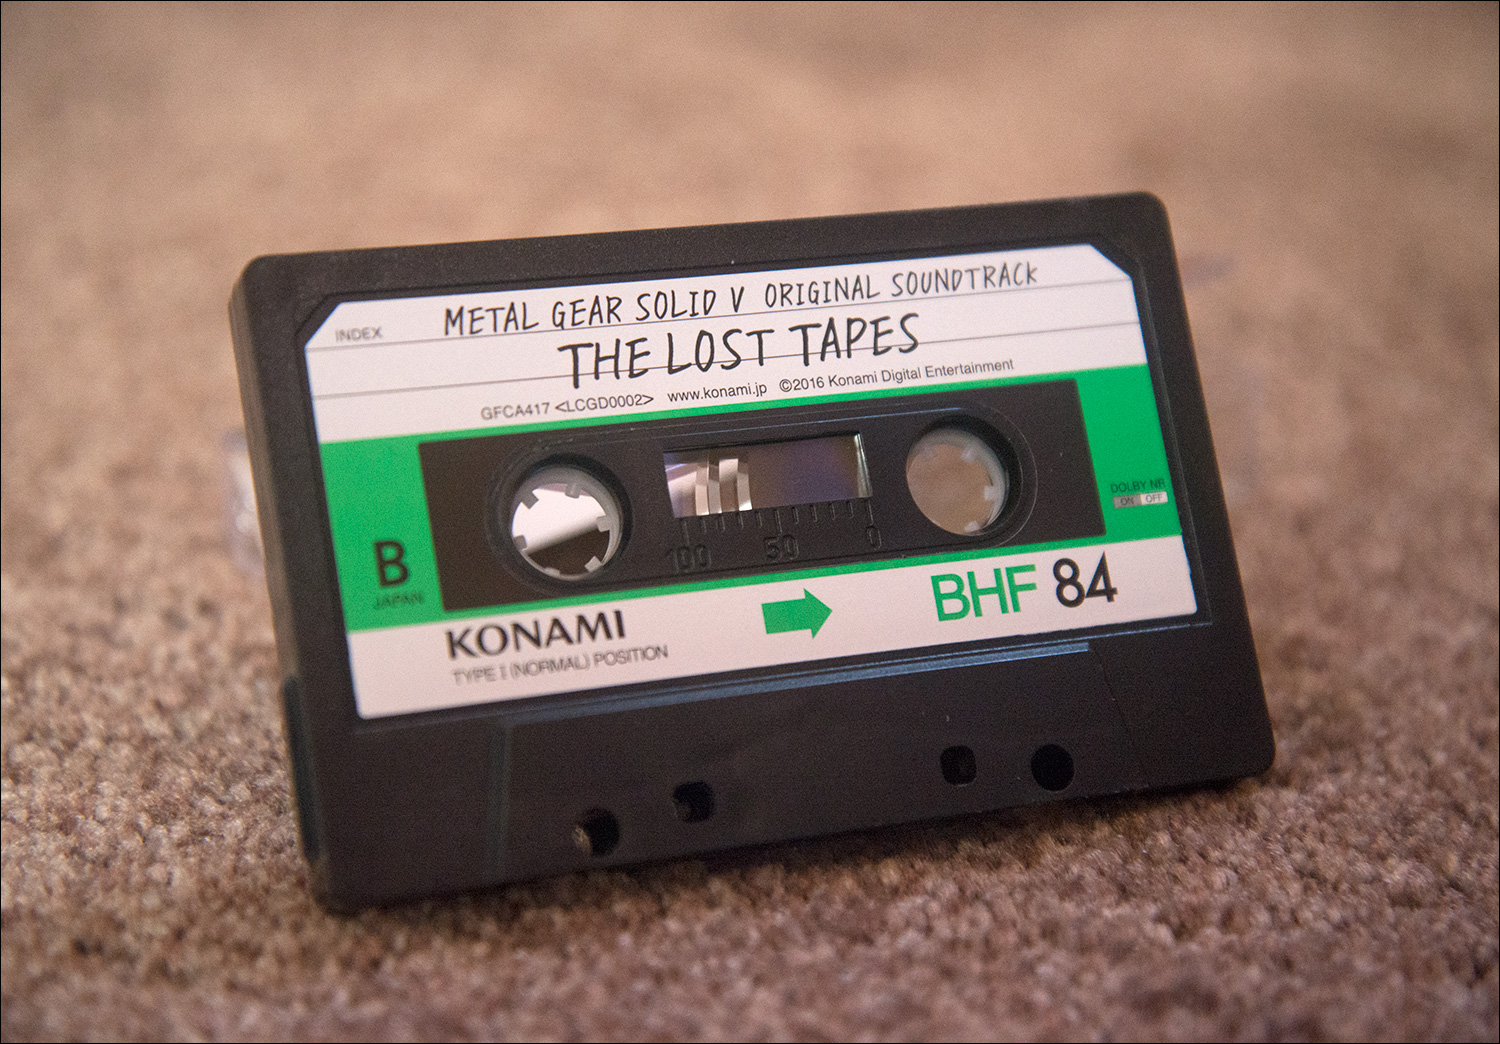 Metal-Gear-Solid-V-The-Lost-Tapes-Cassette-Tape-1